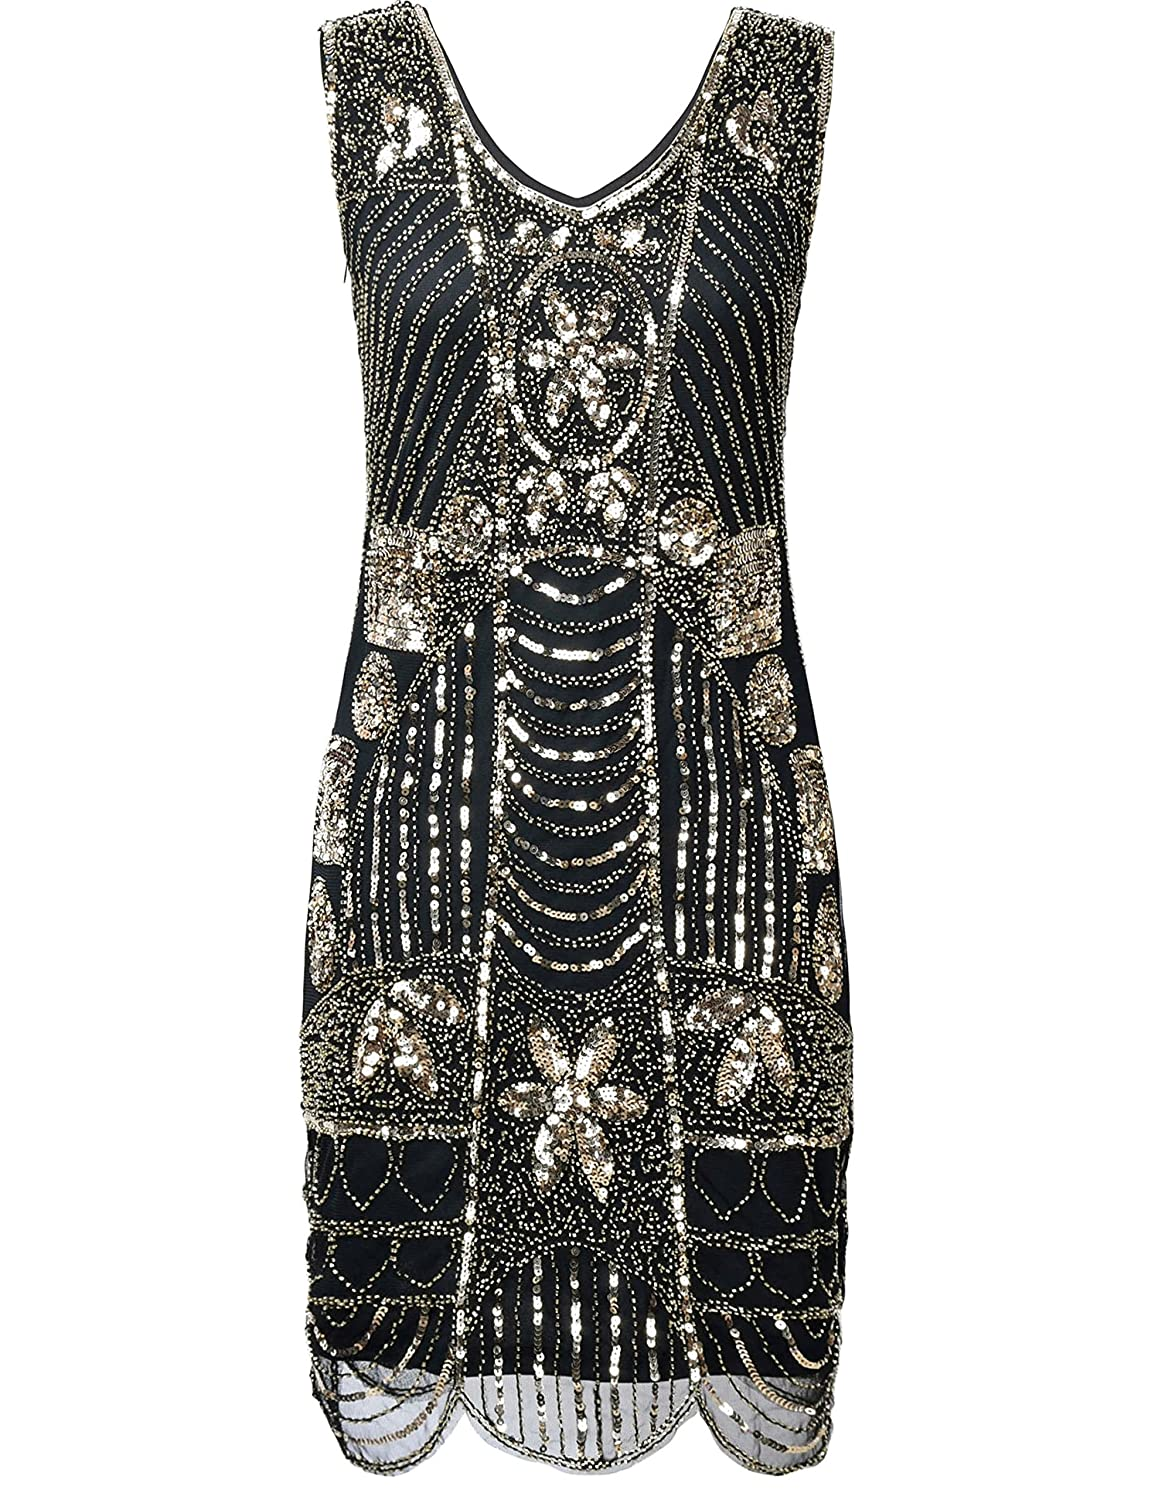 Vintage Inspired Halloween Costumes 1920s Gatsby Sequin Art Deco Scalloped Hem Cocktail Flapper Dress $45.99 AT vintagedancer.com